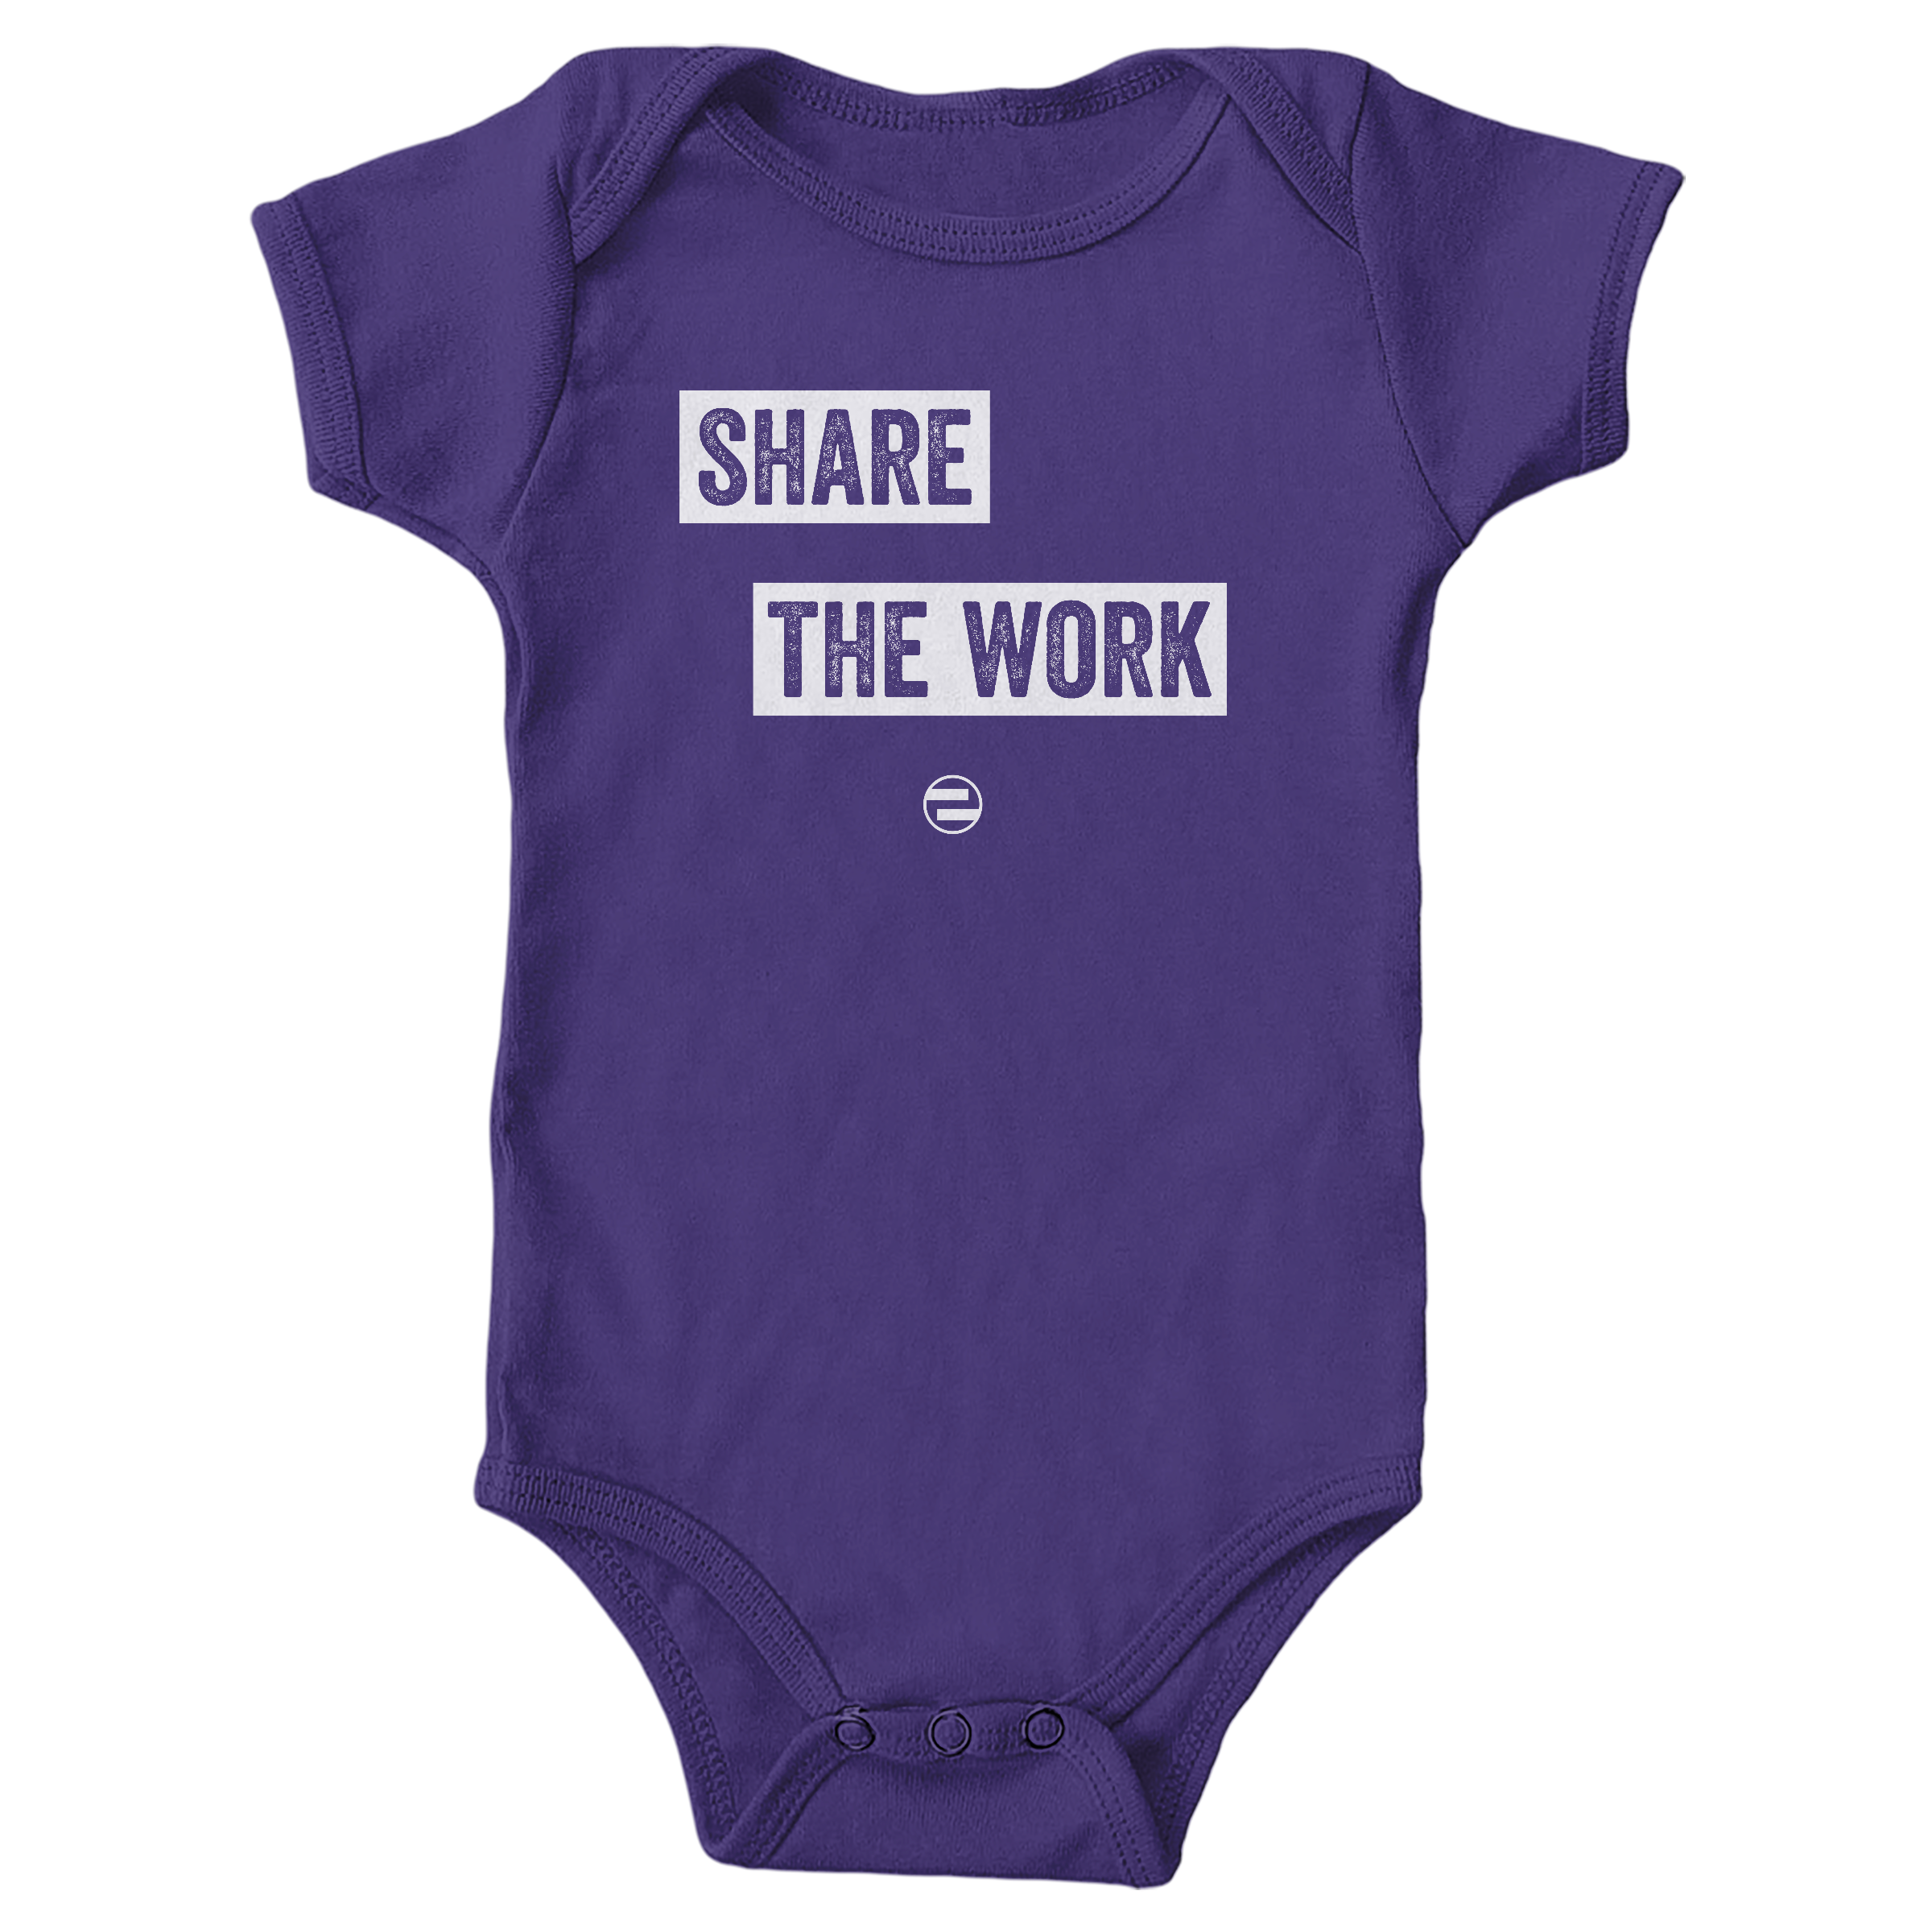 "GenEquality ""Share the Work"" Kids Tee & Onesie Purple (Onesie)"